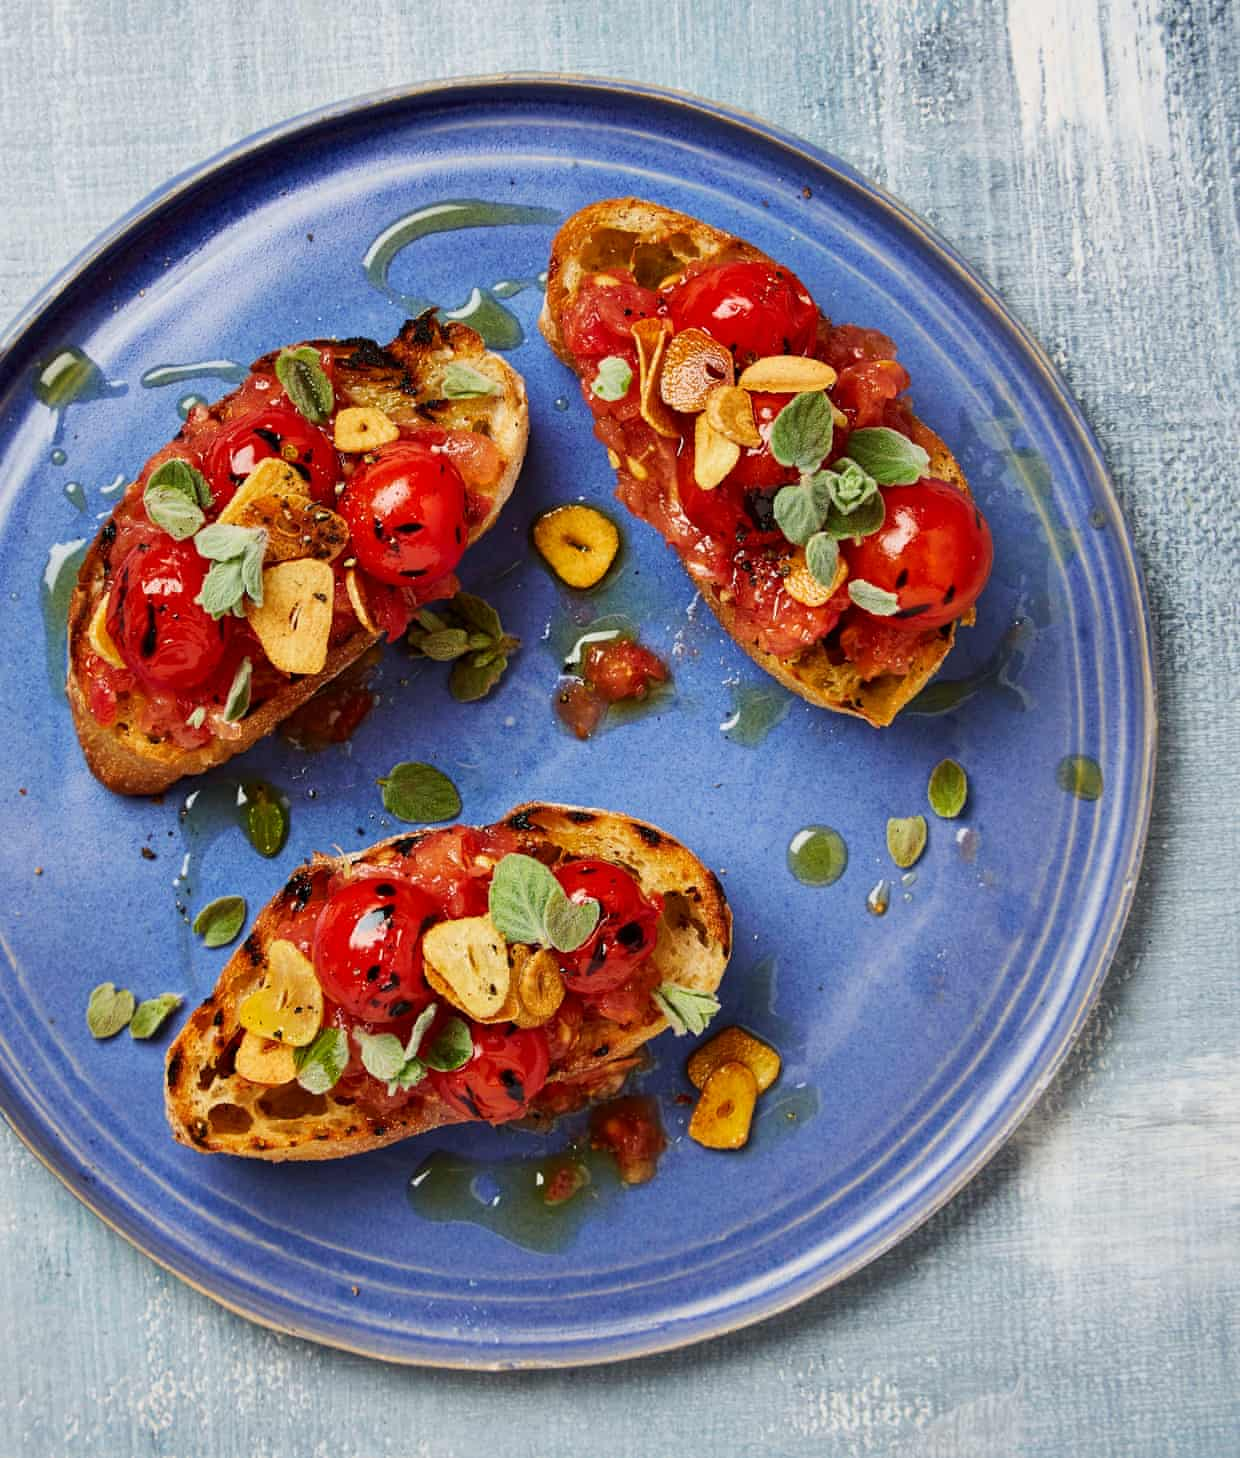 Yotam Ottolenghi's grilled bread with tomato and fried garlic.